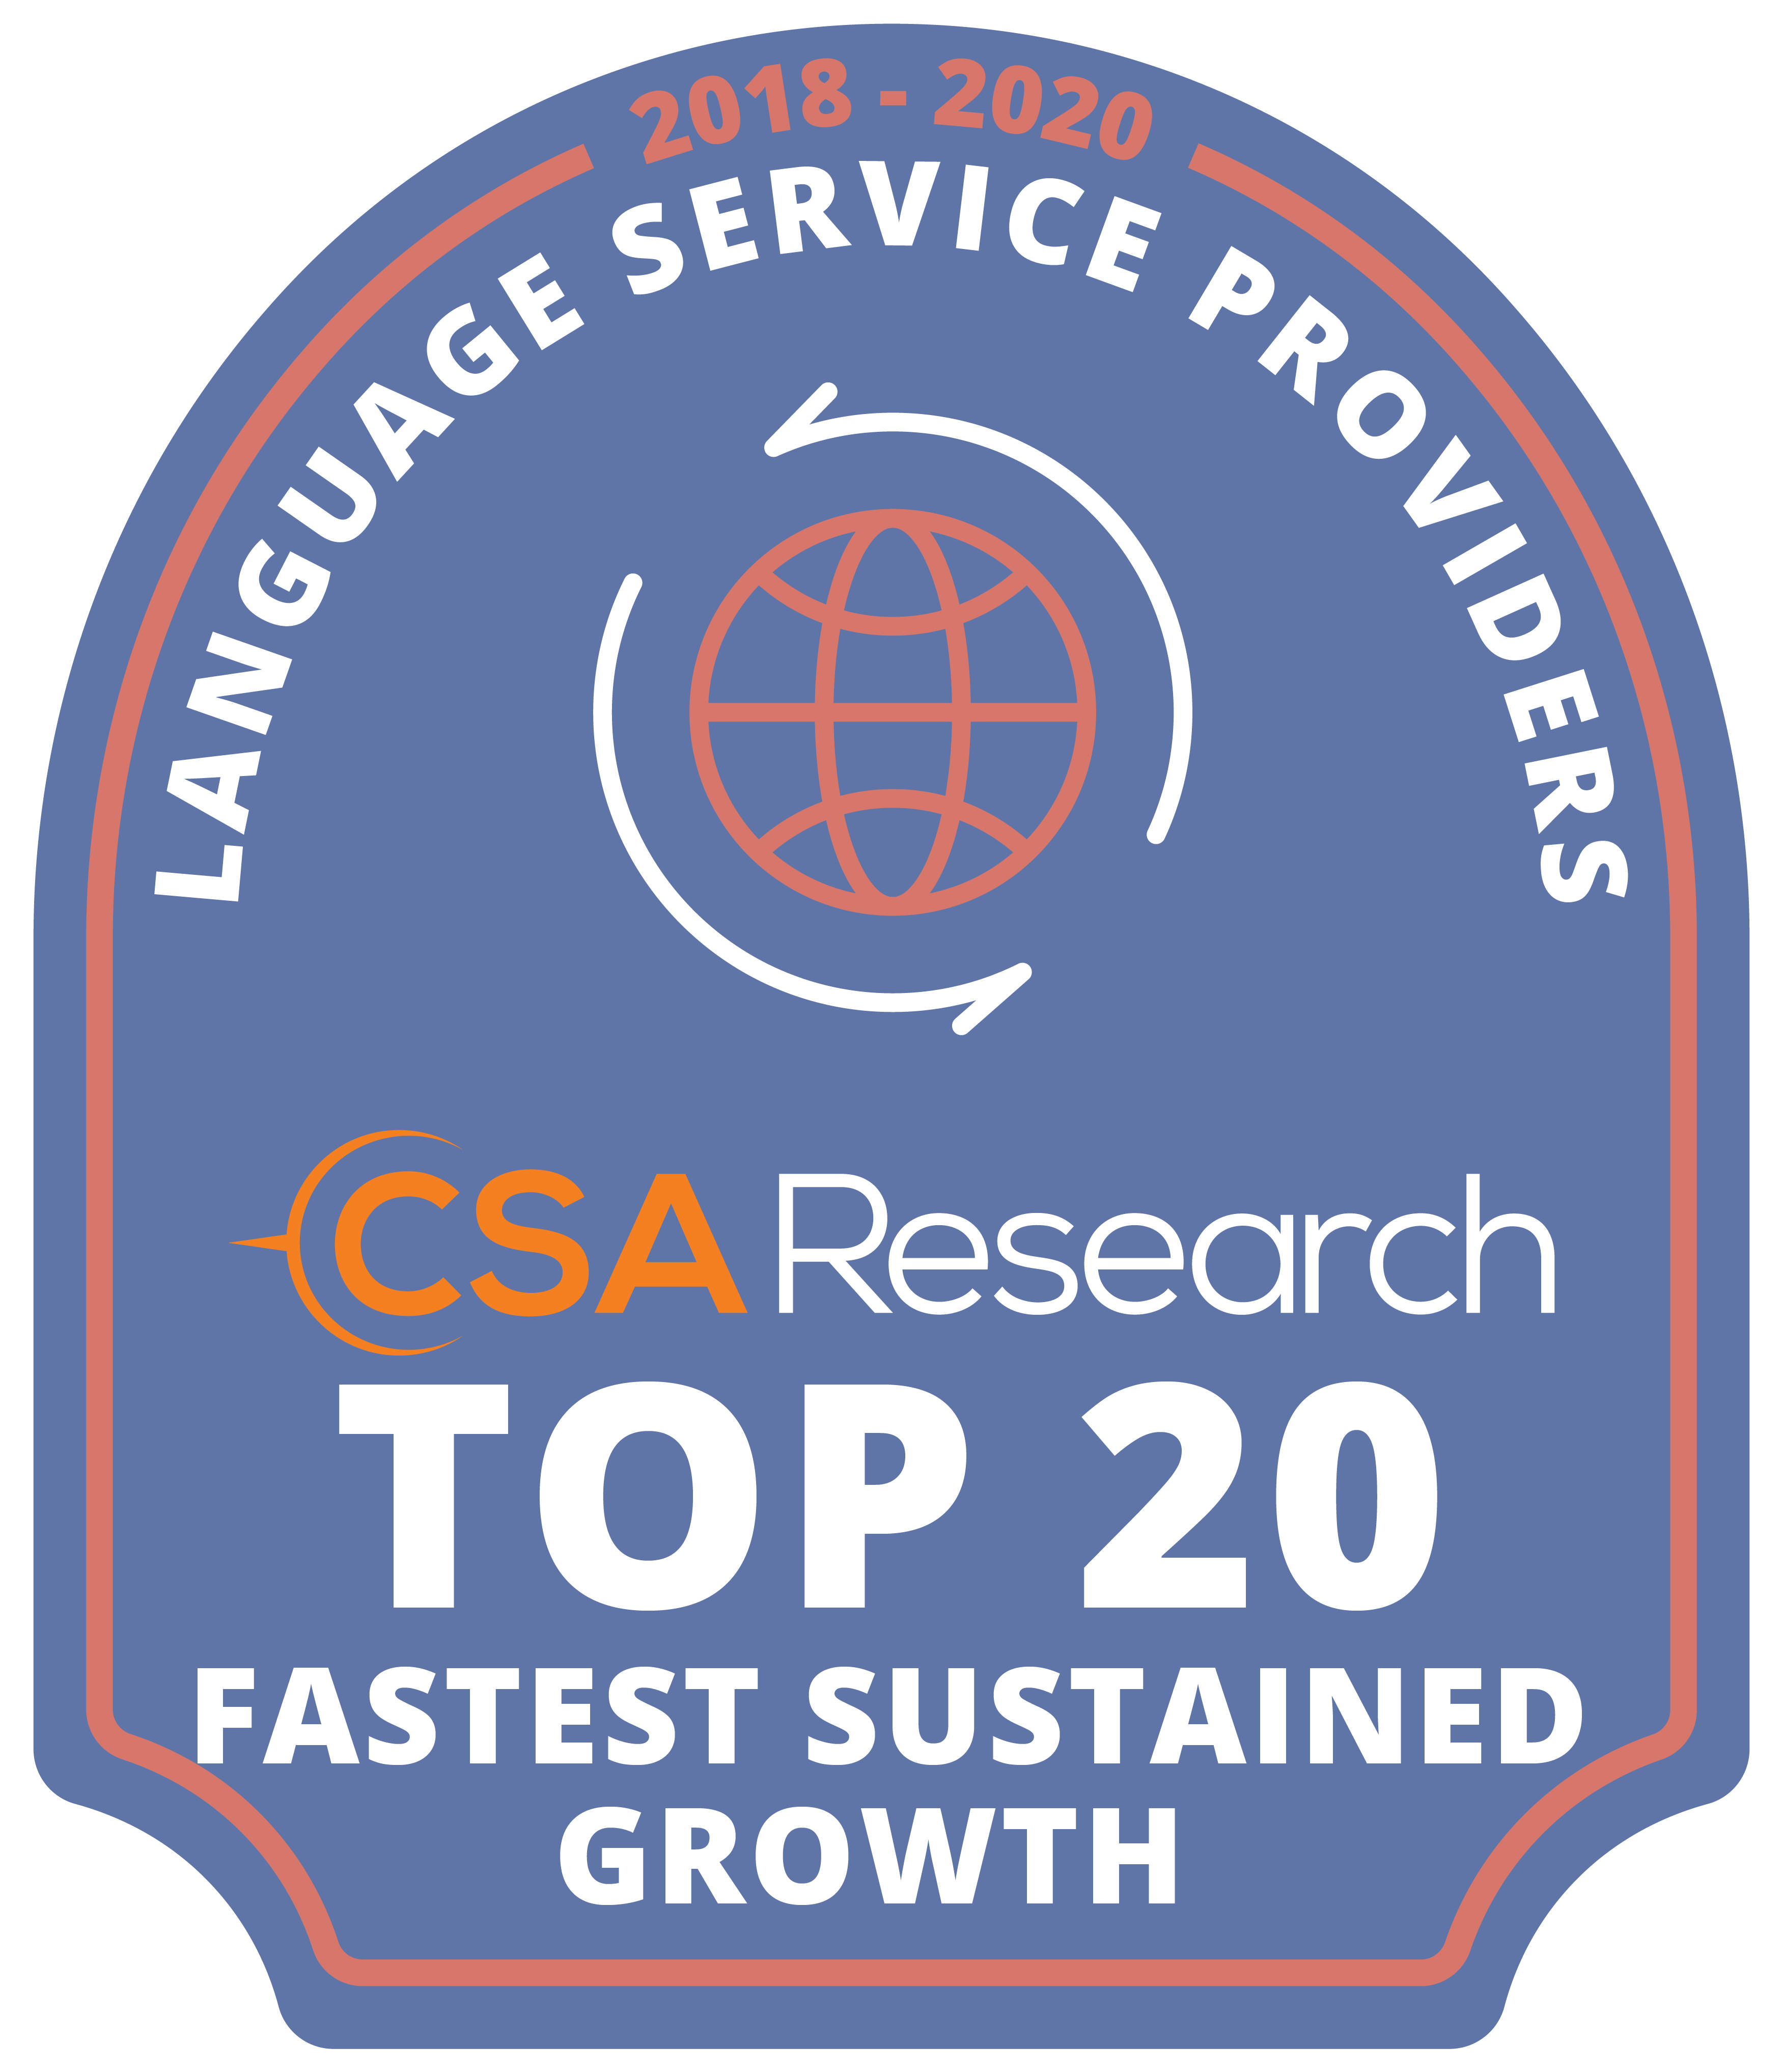 ALM Translations Ranked Among Fastest-Growing Language Service Providers in the World